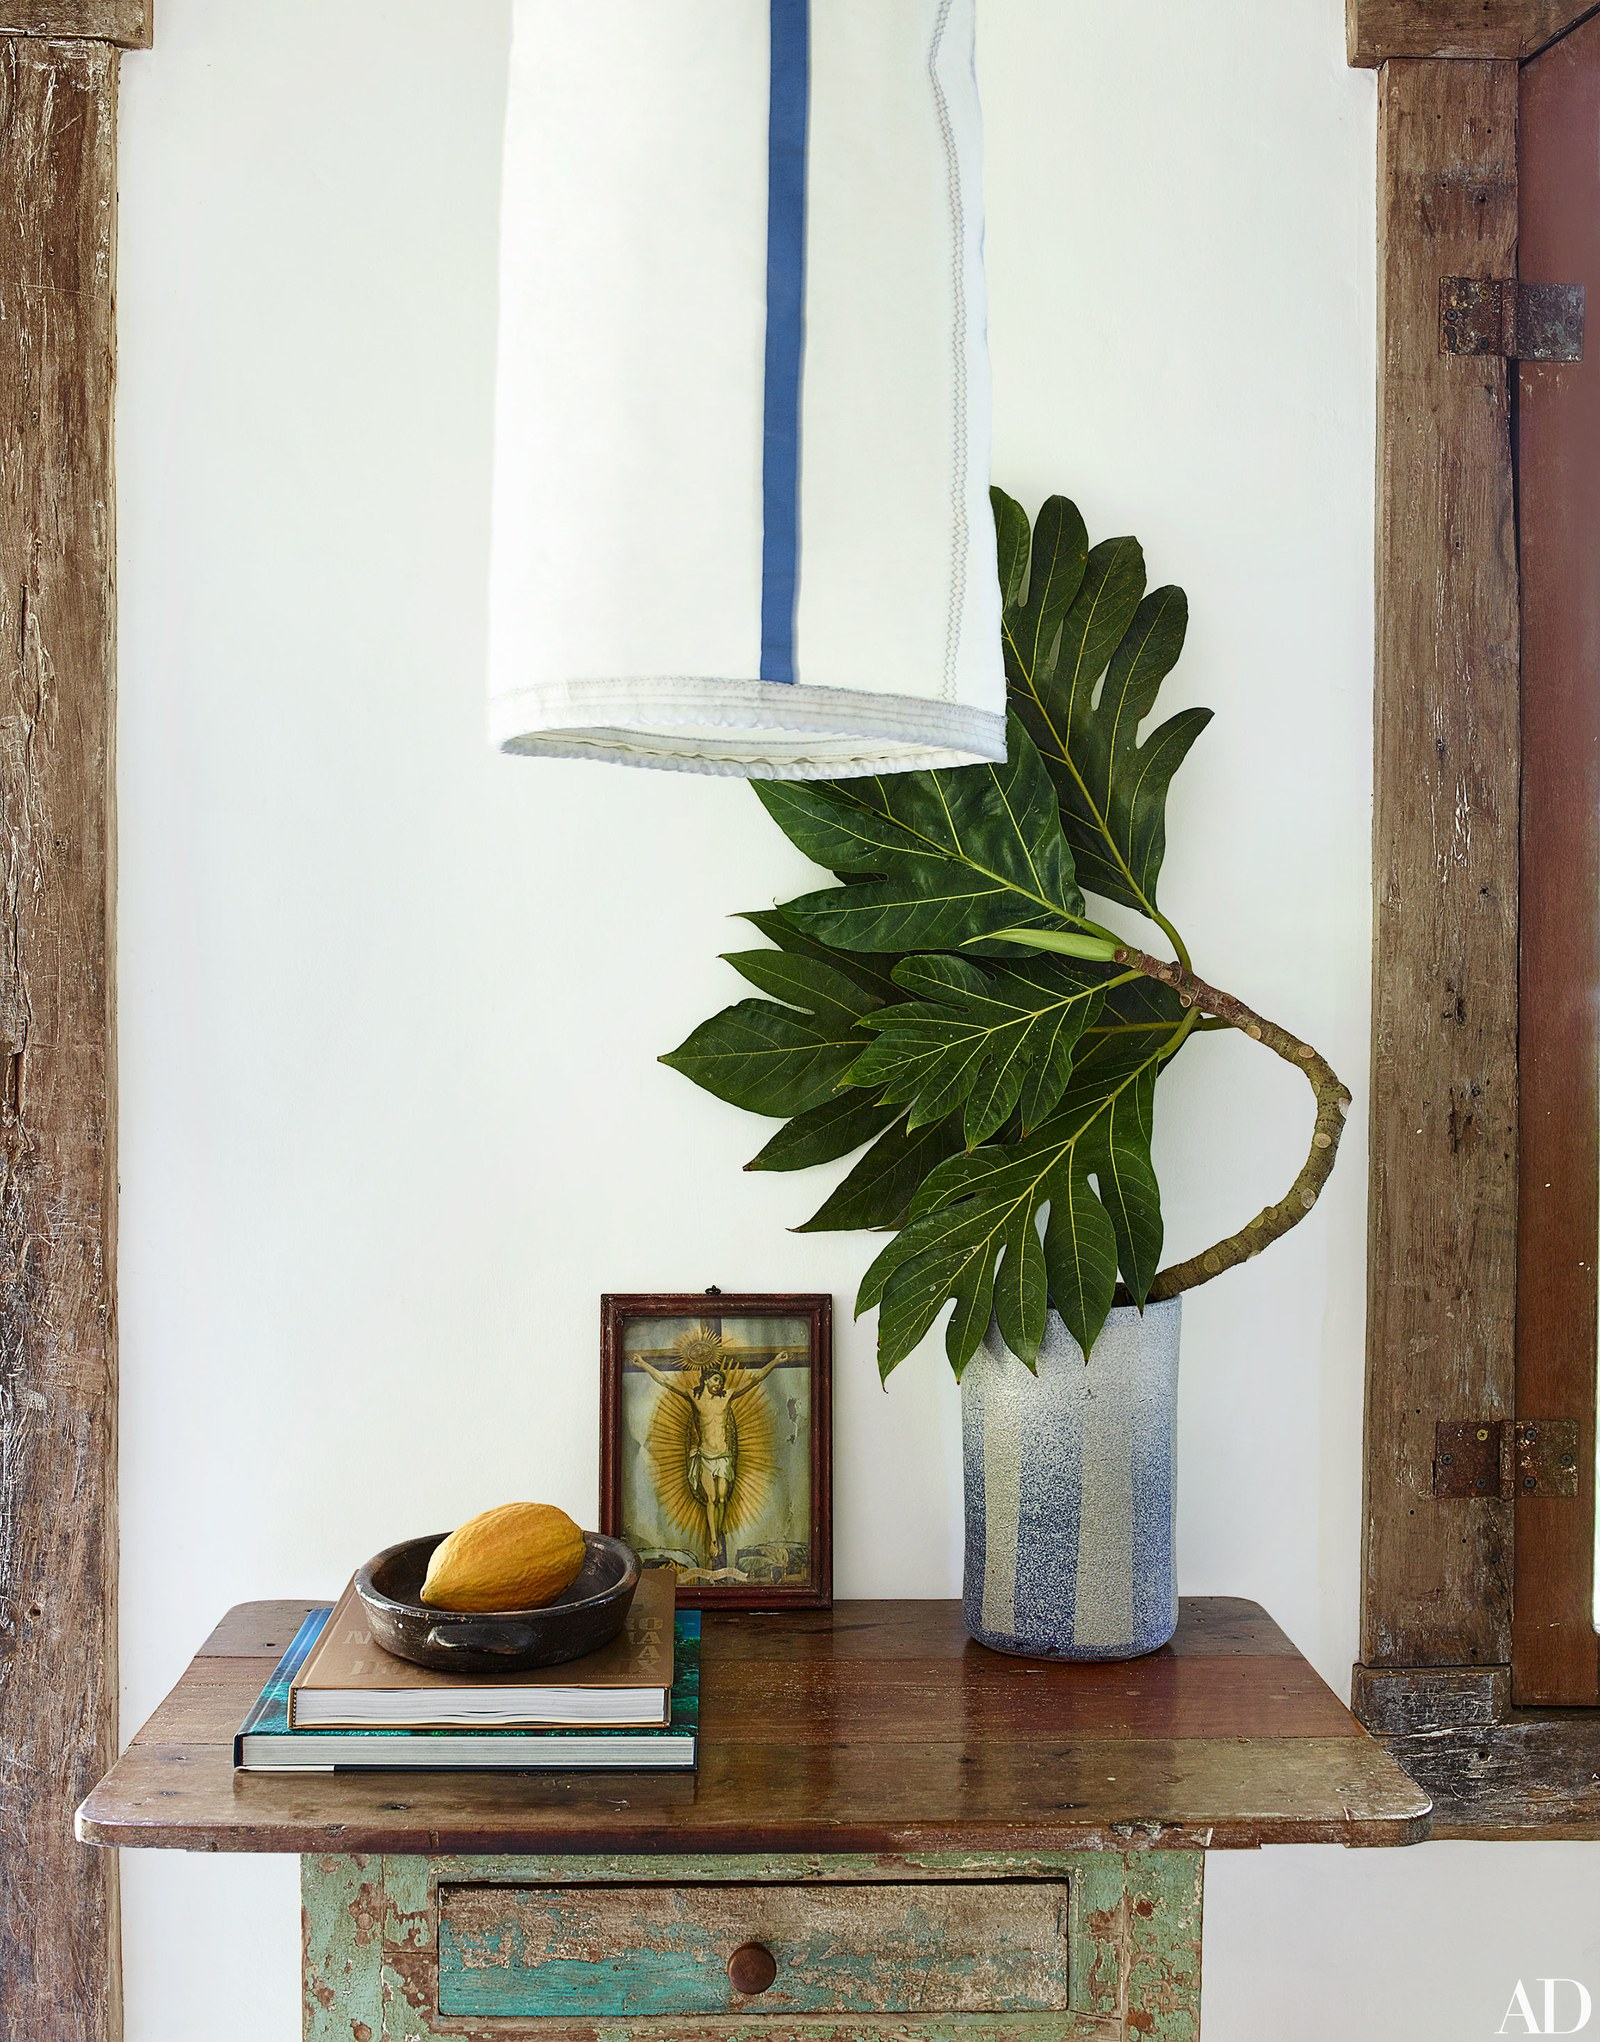 Photos by  Simon Upton  for Architectural Digest